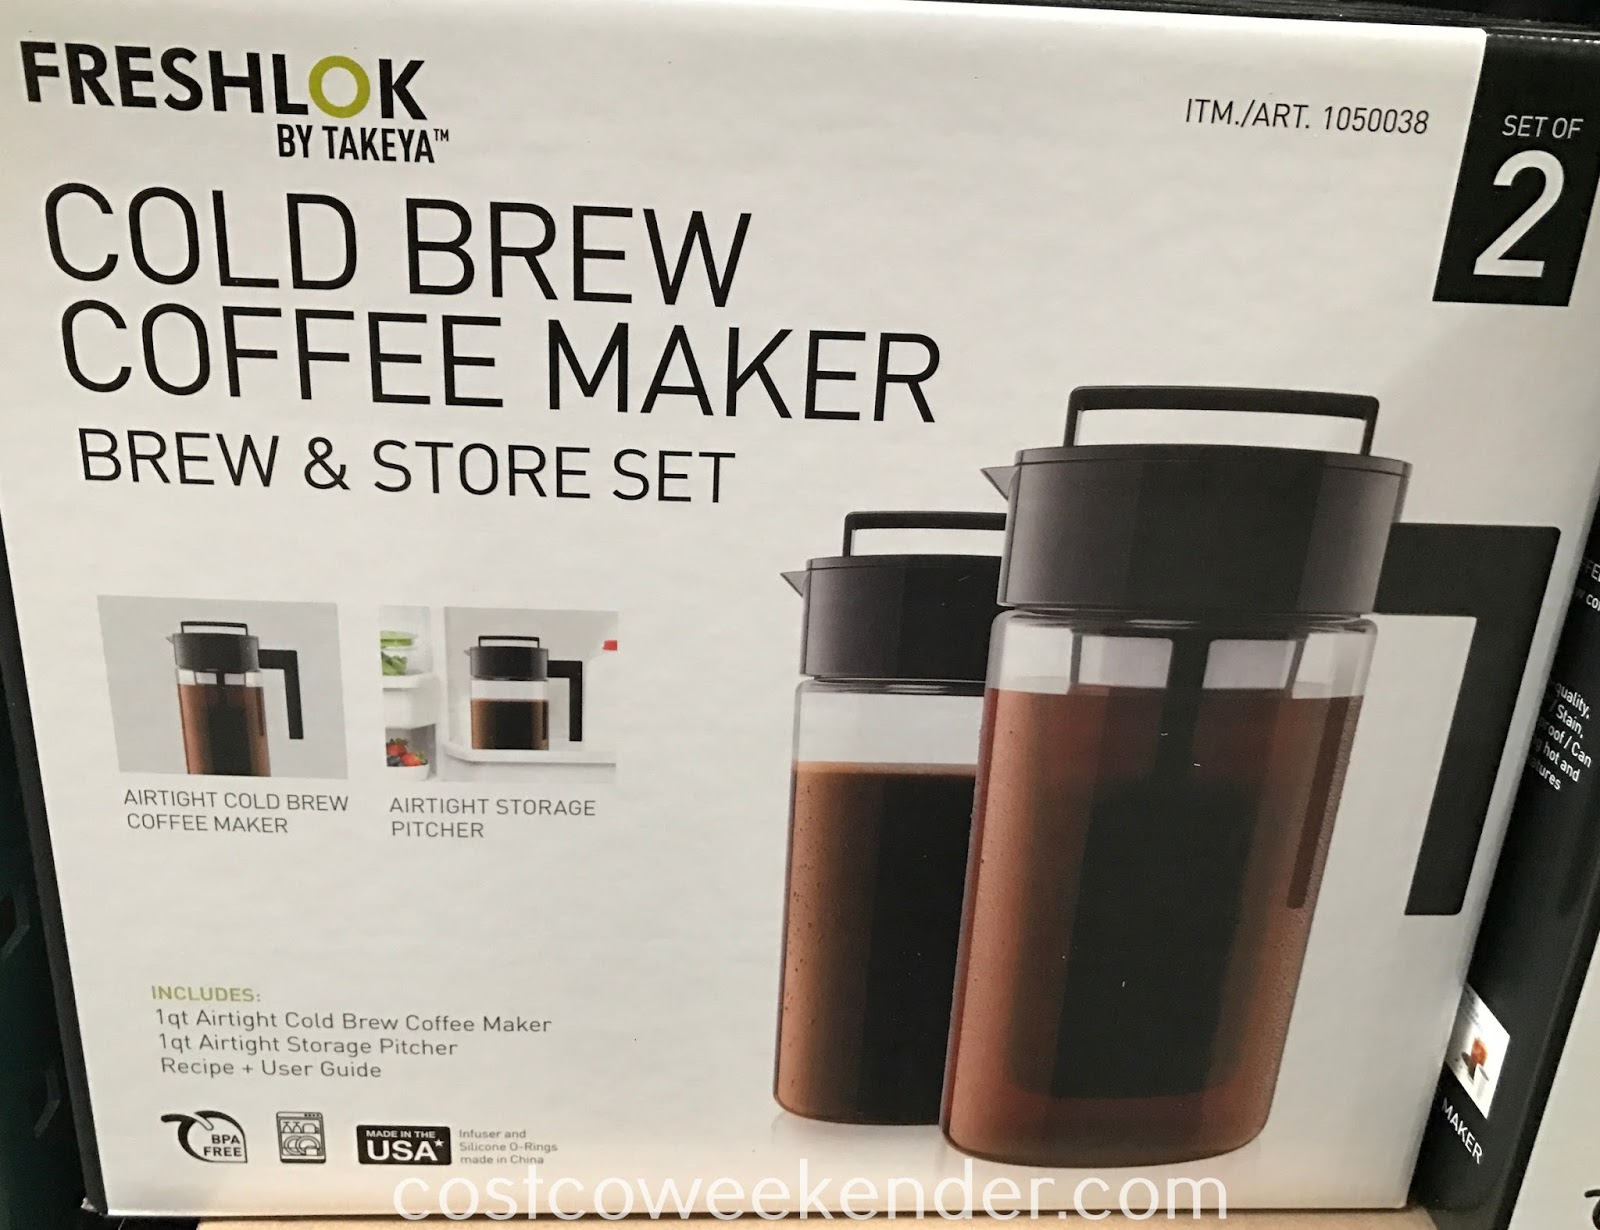 Enjoy iced coffee on a hot day with the Takeya Cold Brew Coffee Maker Brew and Store Set